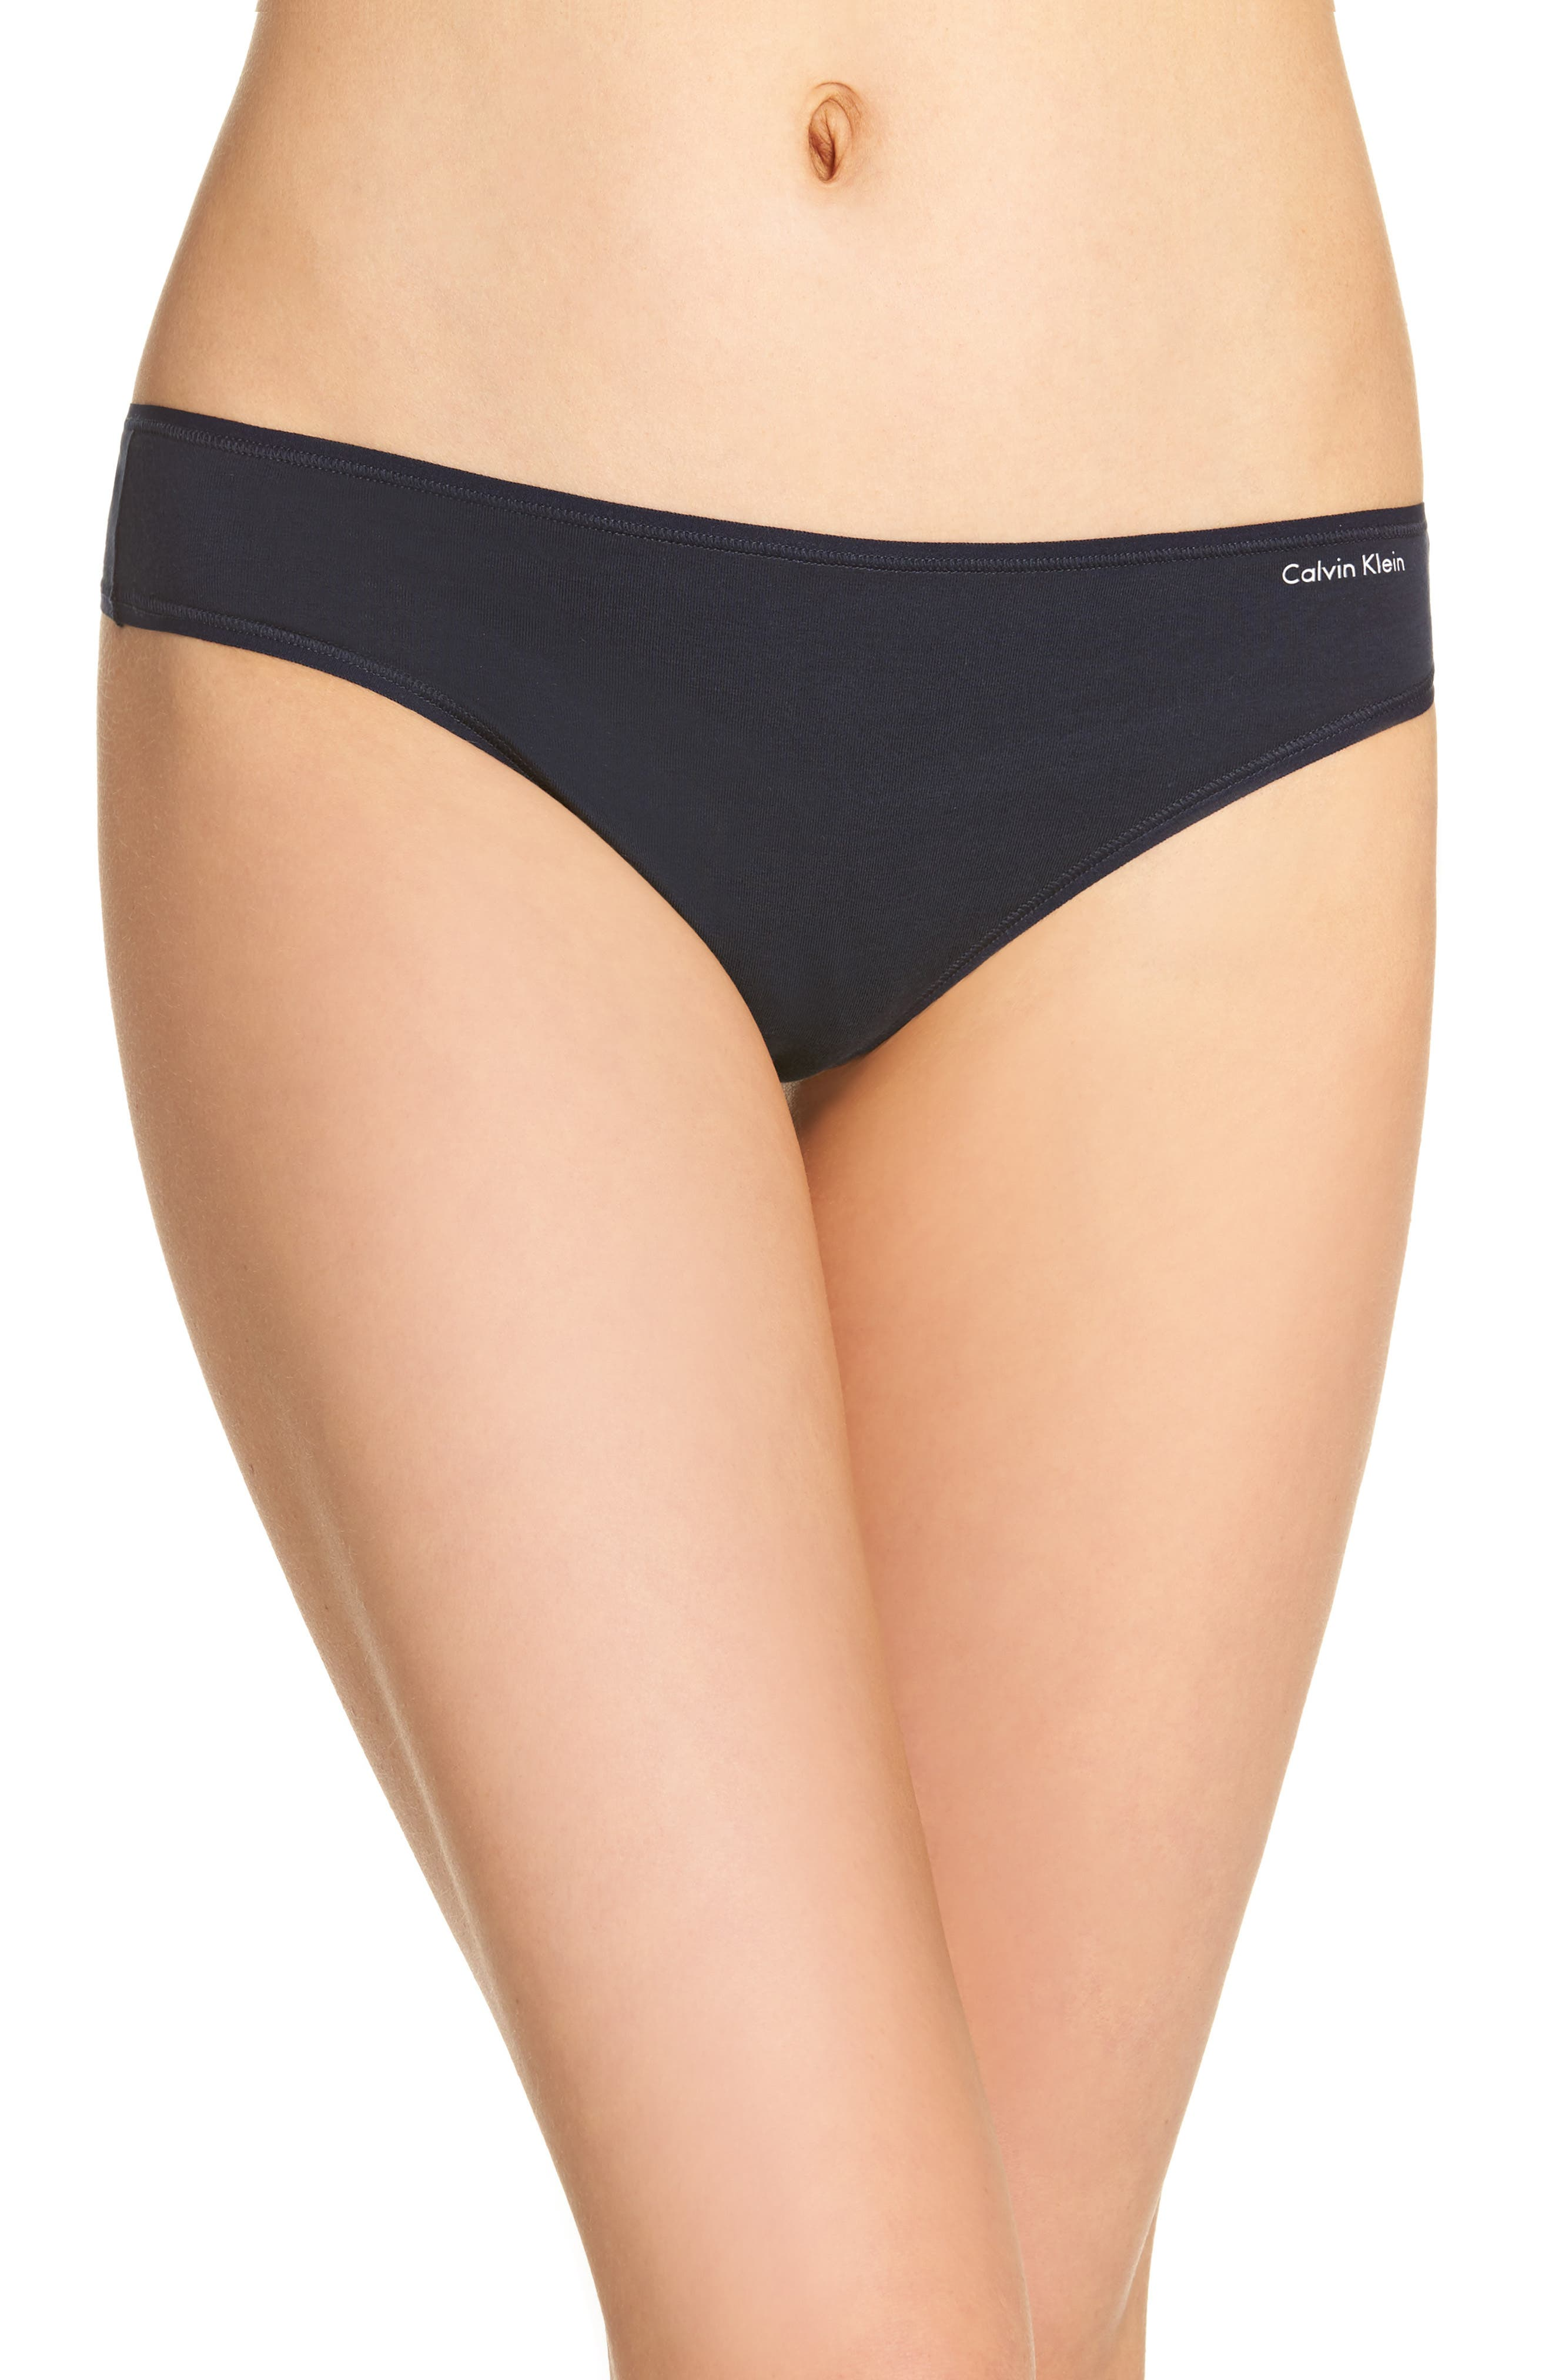 Alternate Image 1 Selected - Calvin Klein Form Thong (3 for $33)